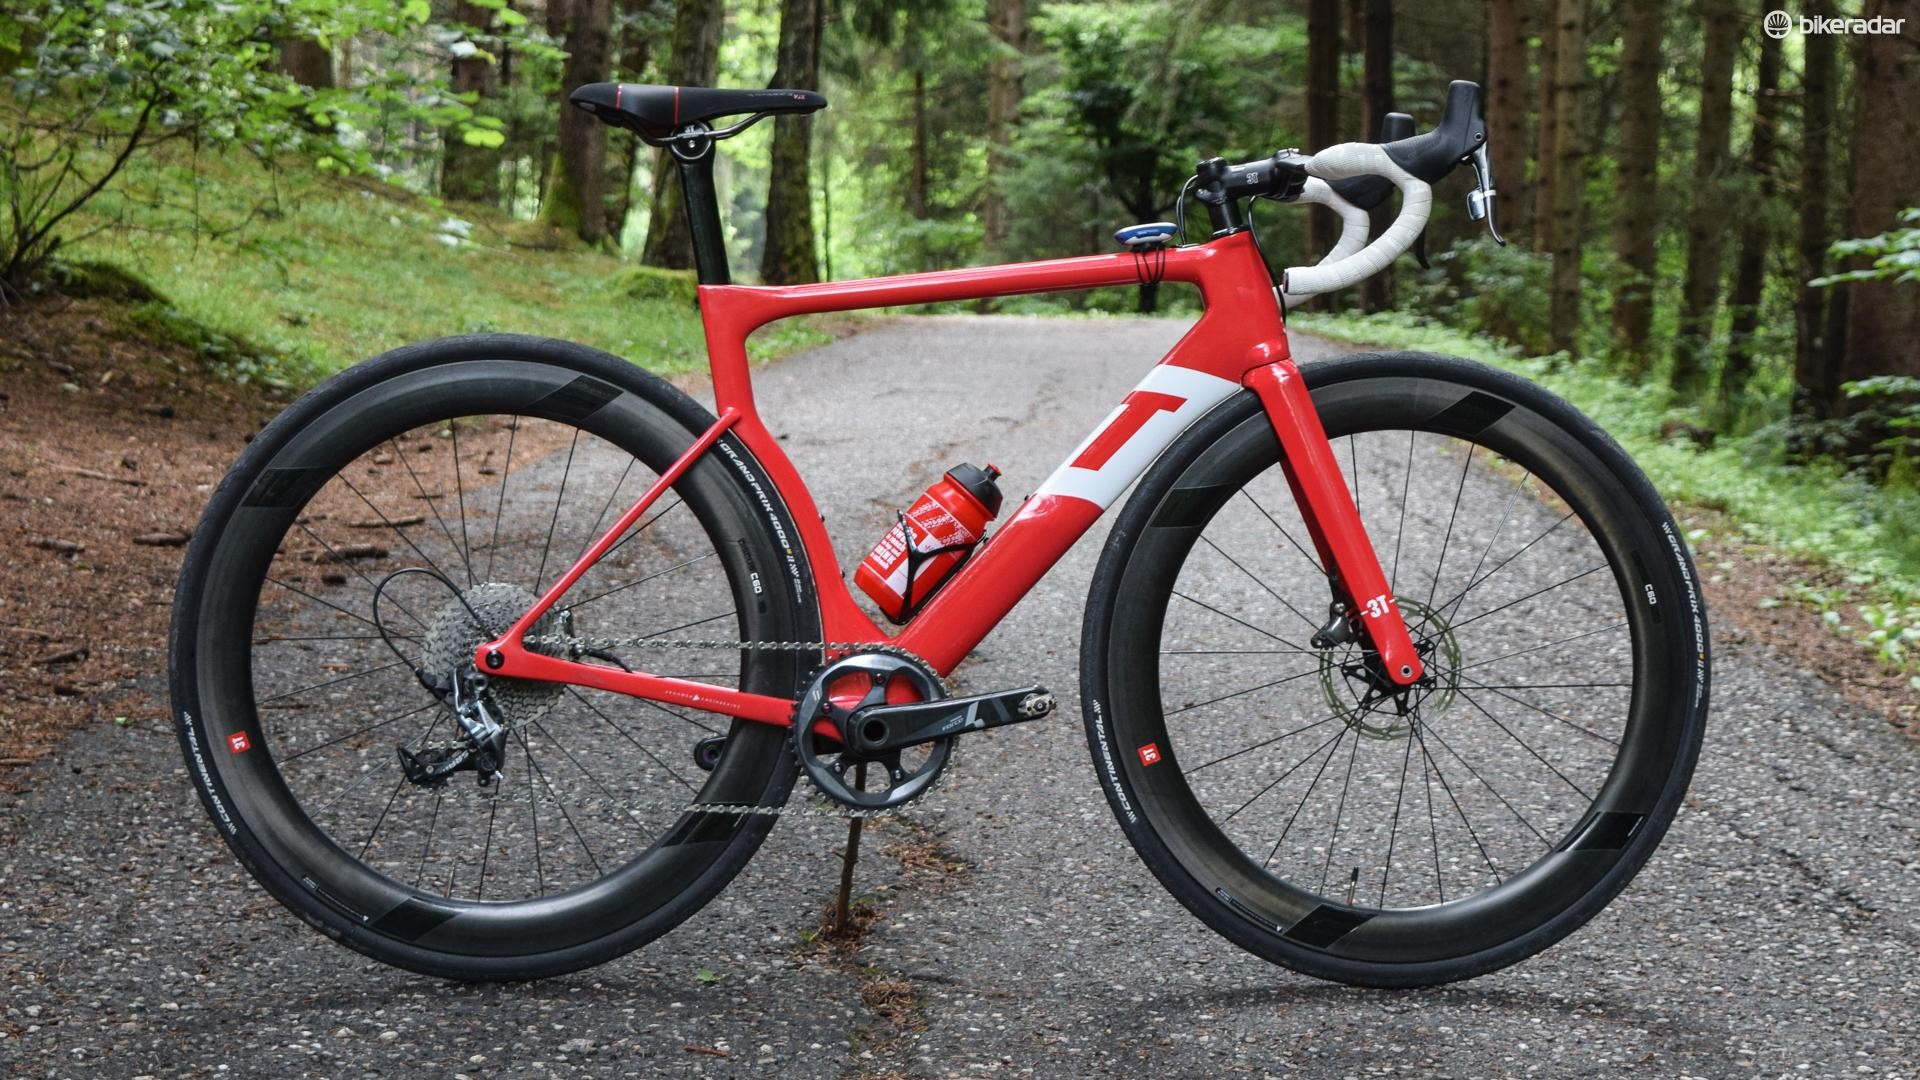 Is the 3T Strada the future of road bikes?